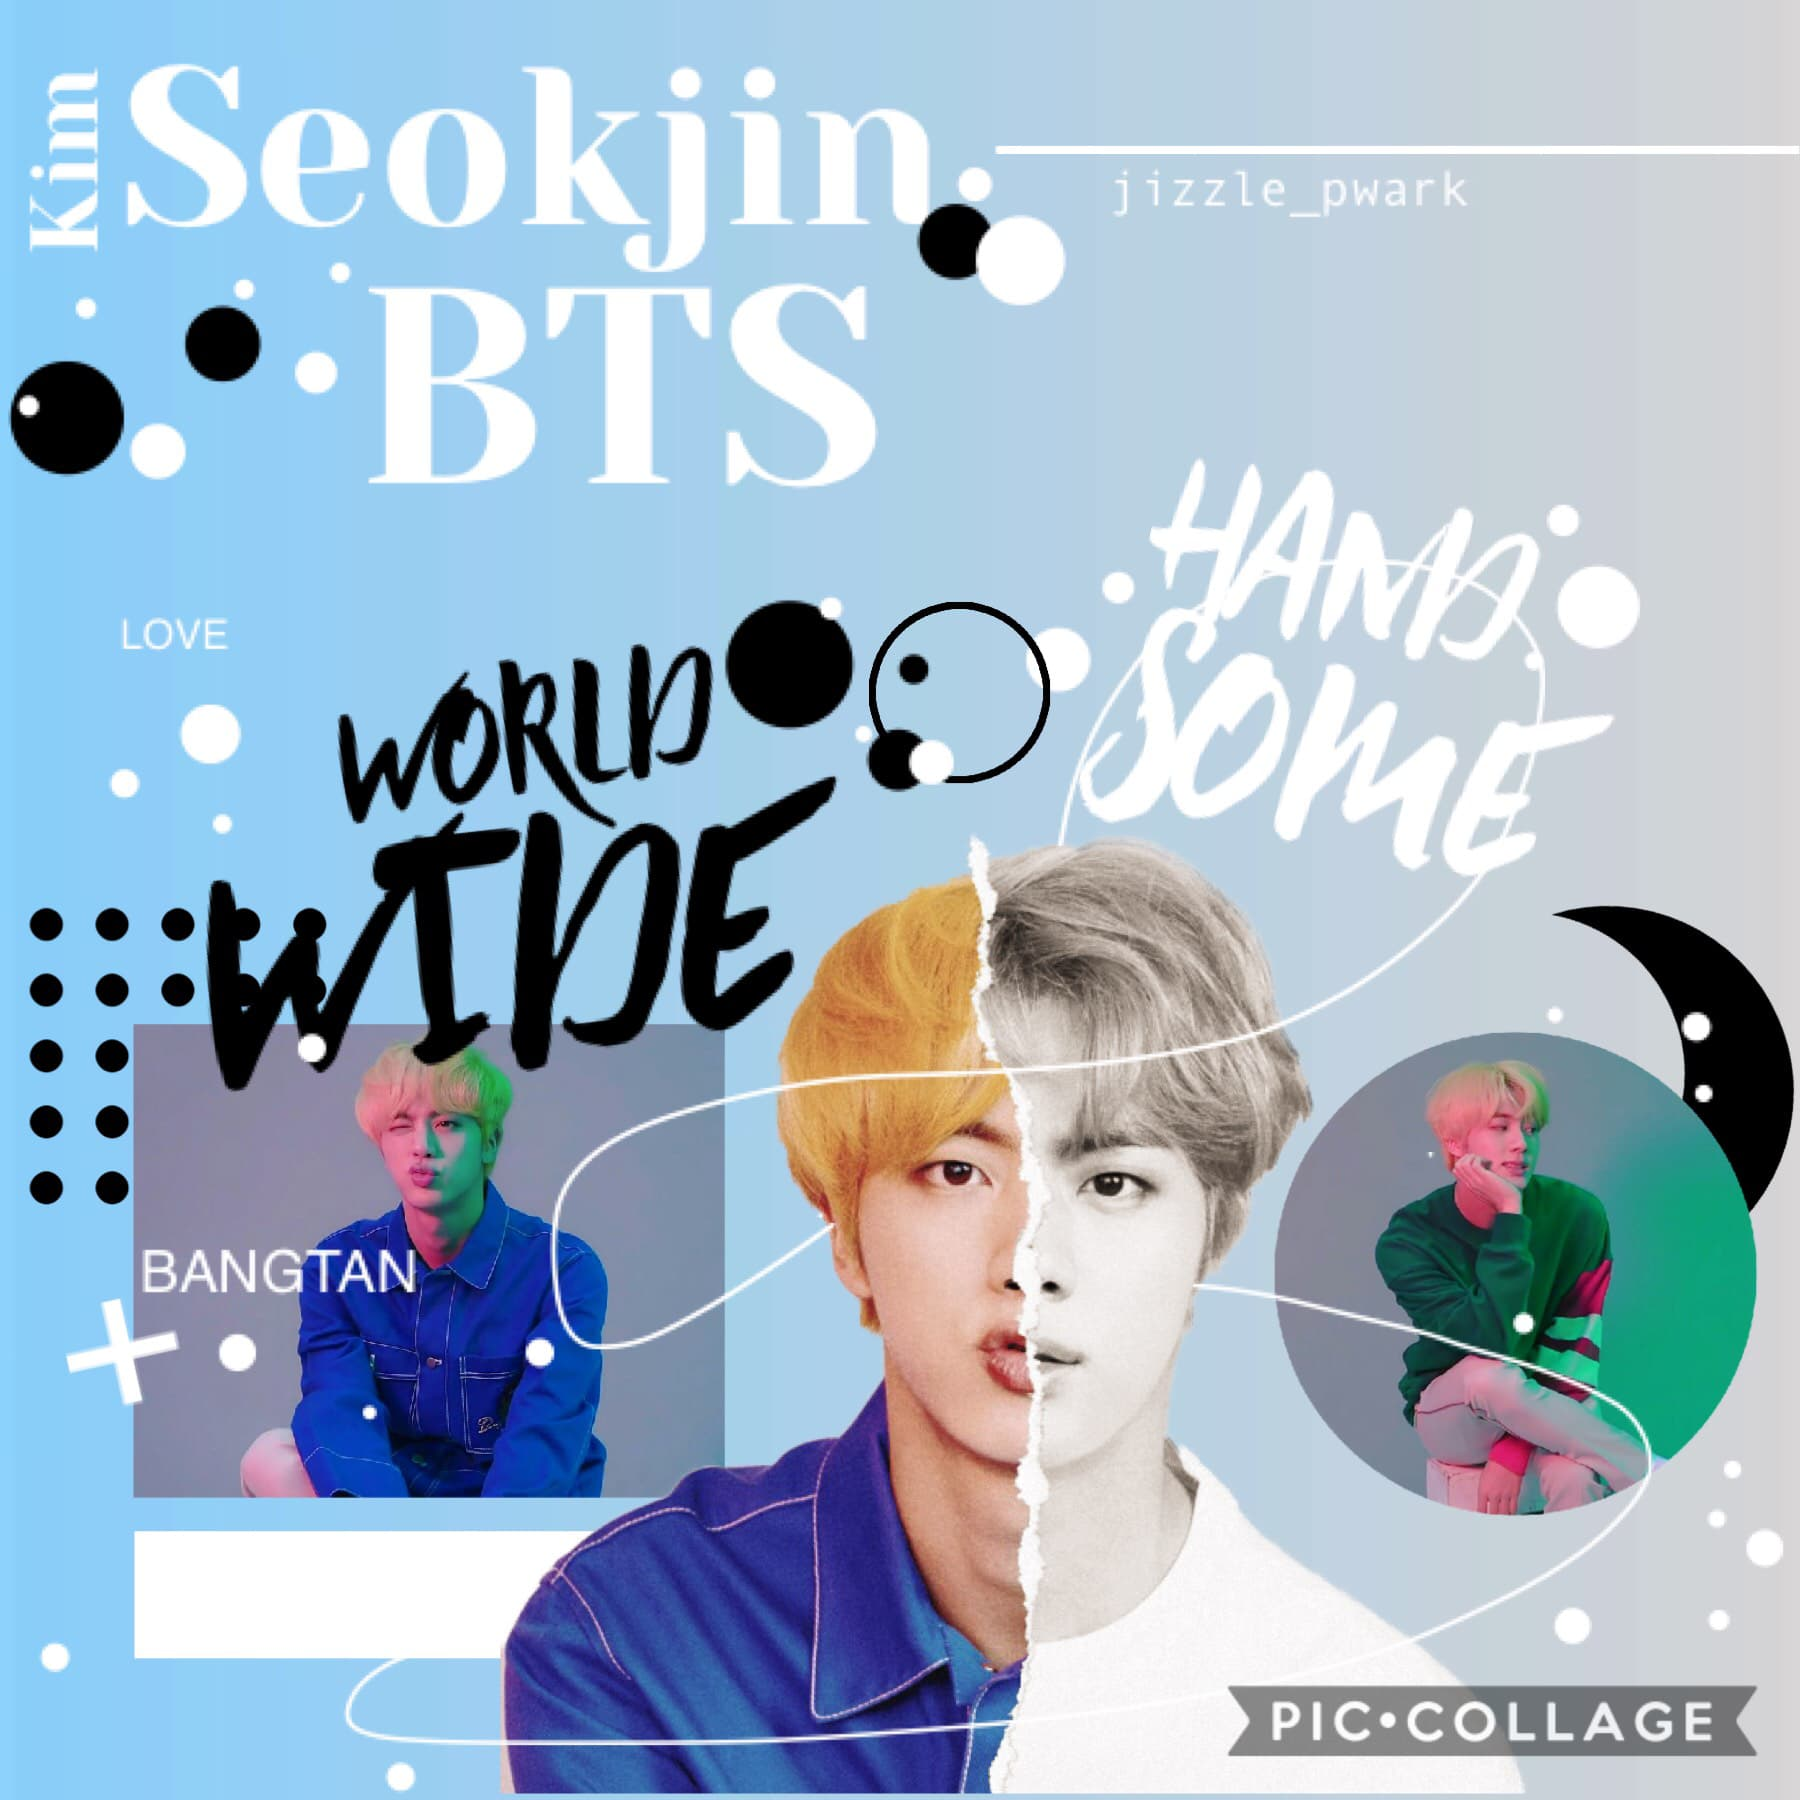 Inspired by: rose_panda Ugh! I'm so late for birthday collages 😭 I'm so sorry Jin...